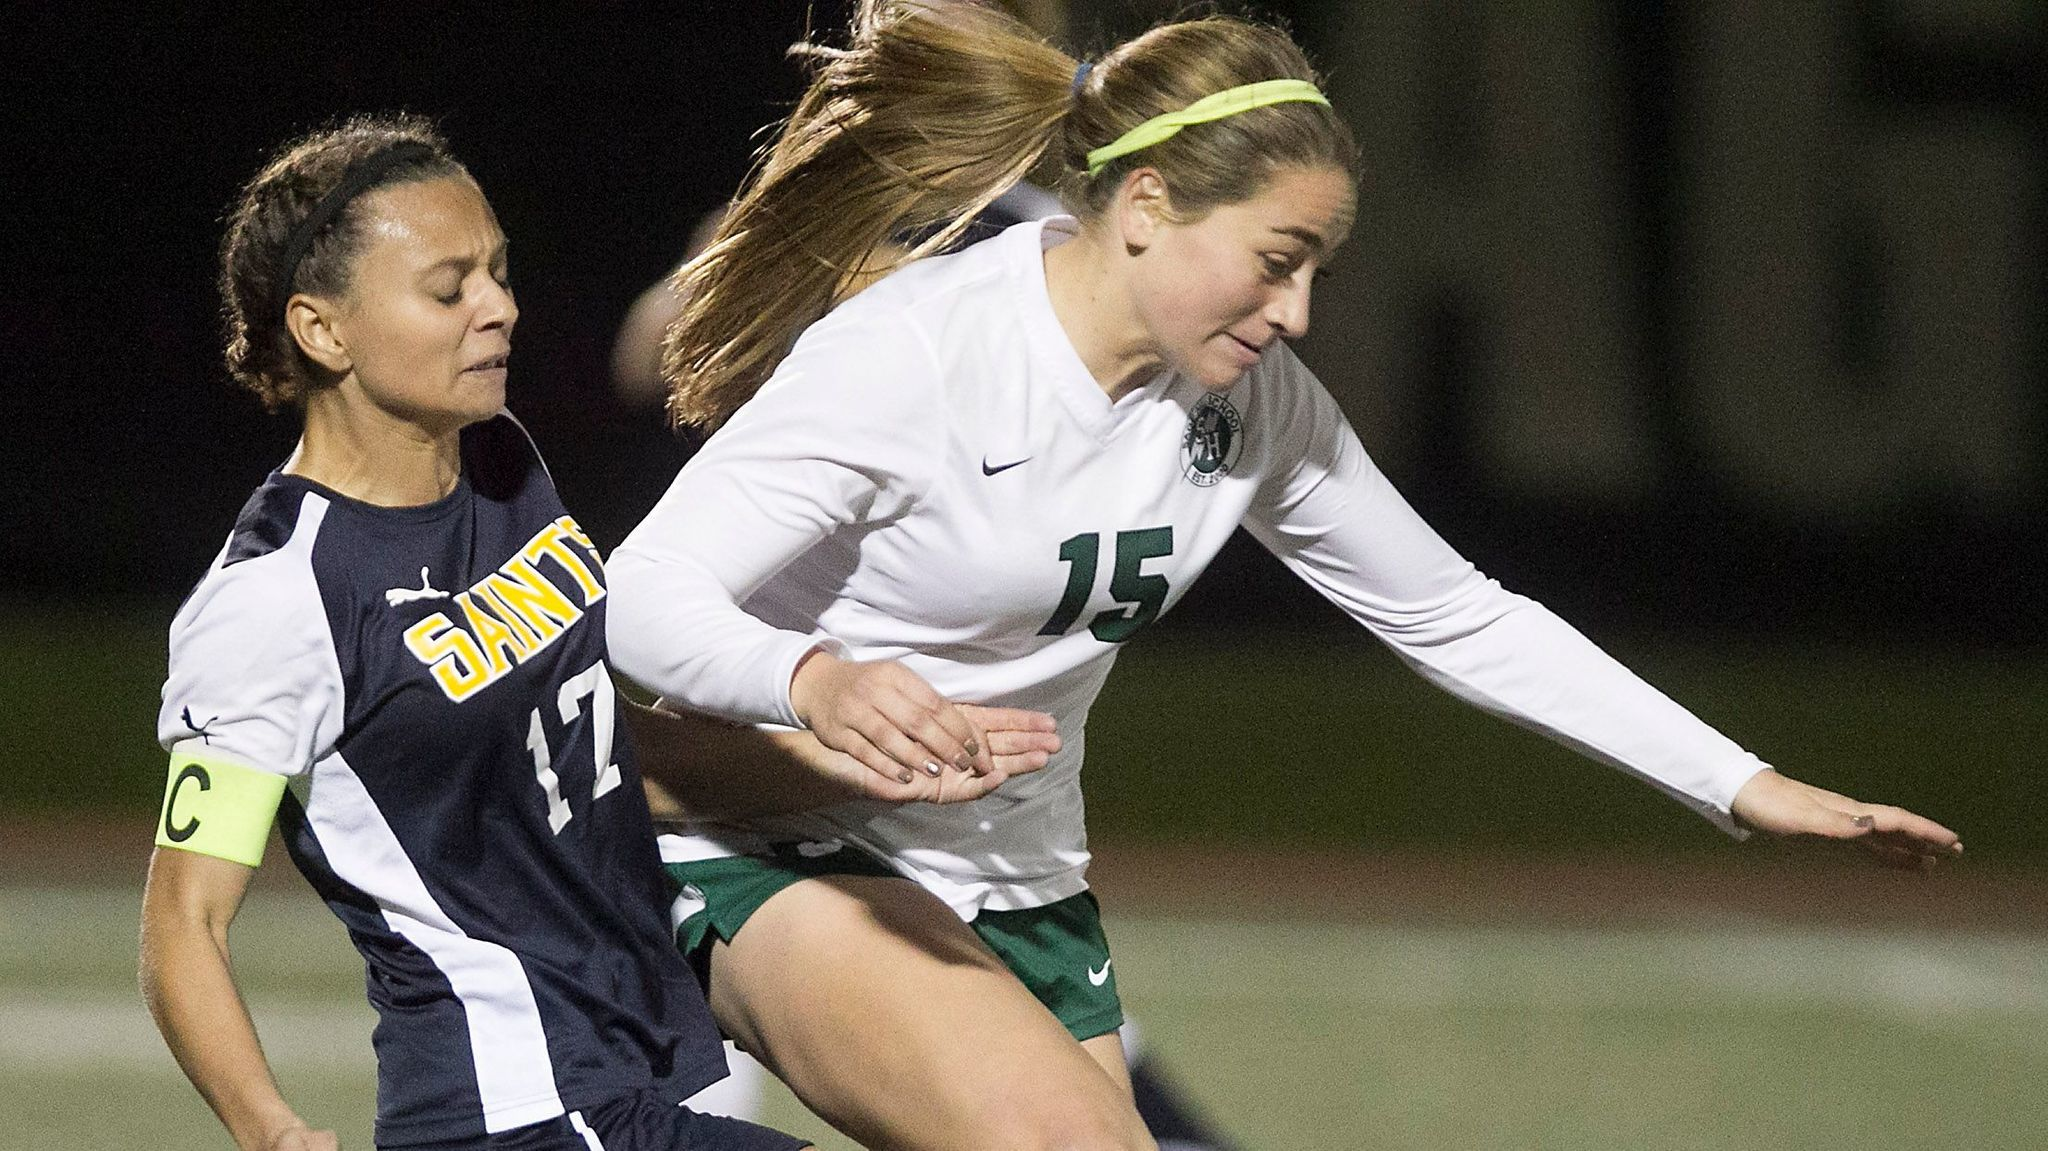 Sage Hill girls' soccer player Taylor Magliarditi